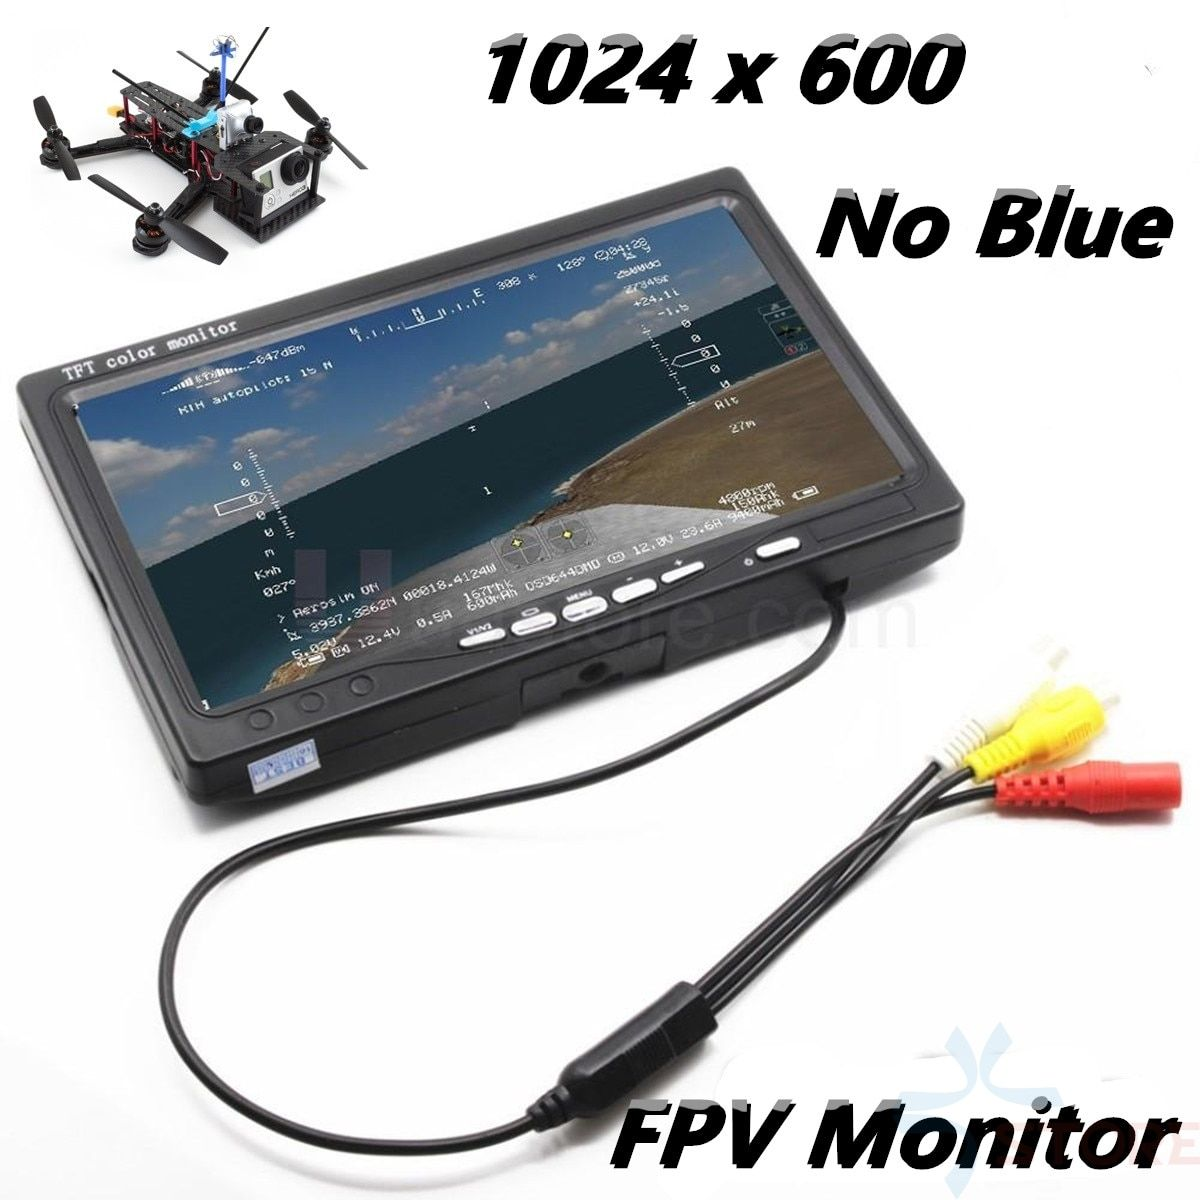 7 inch LCD TFT FPV Monitor 1024x600 w/T plug Screen No blue FPV Monitor Photography for Ground Station Phantom RC Model QAV250